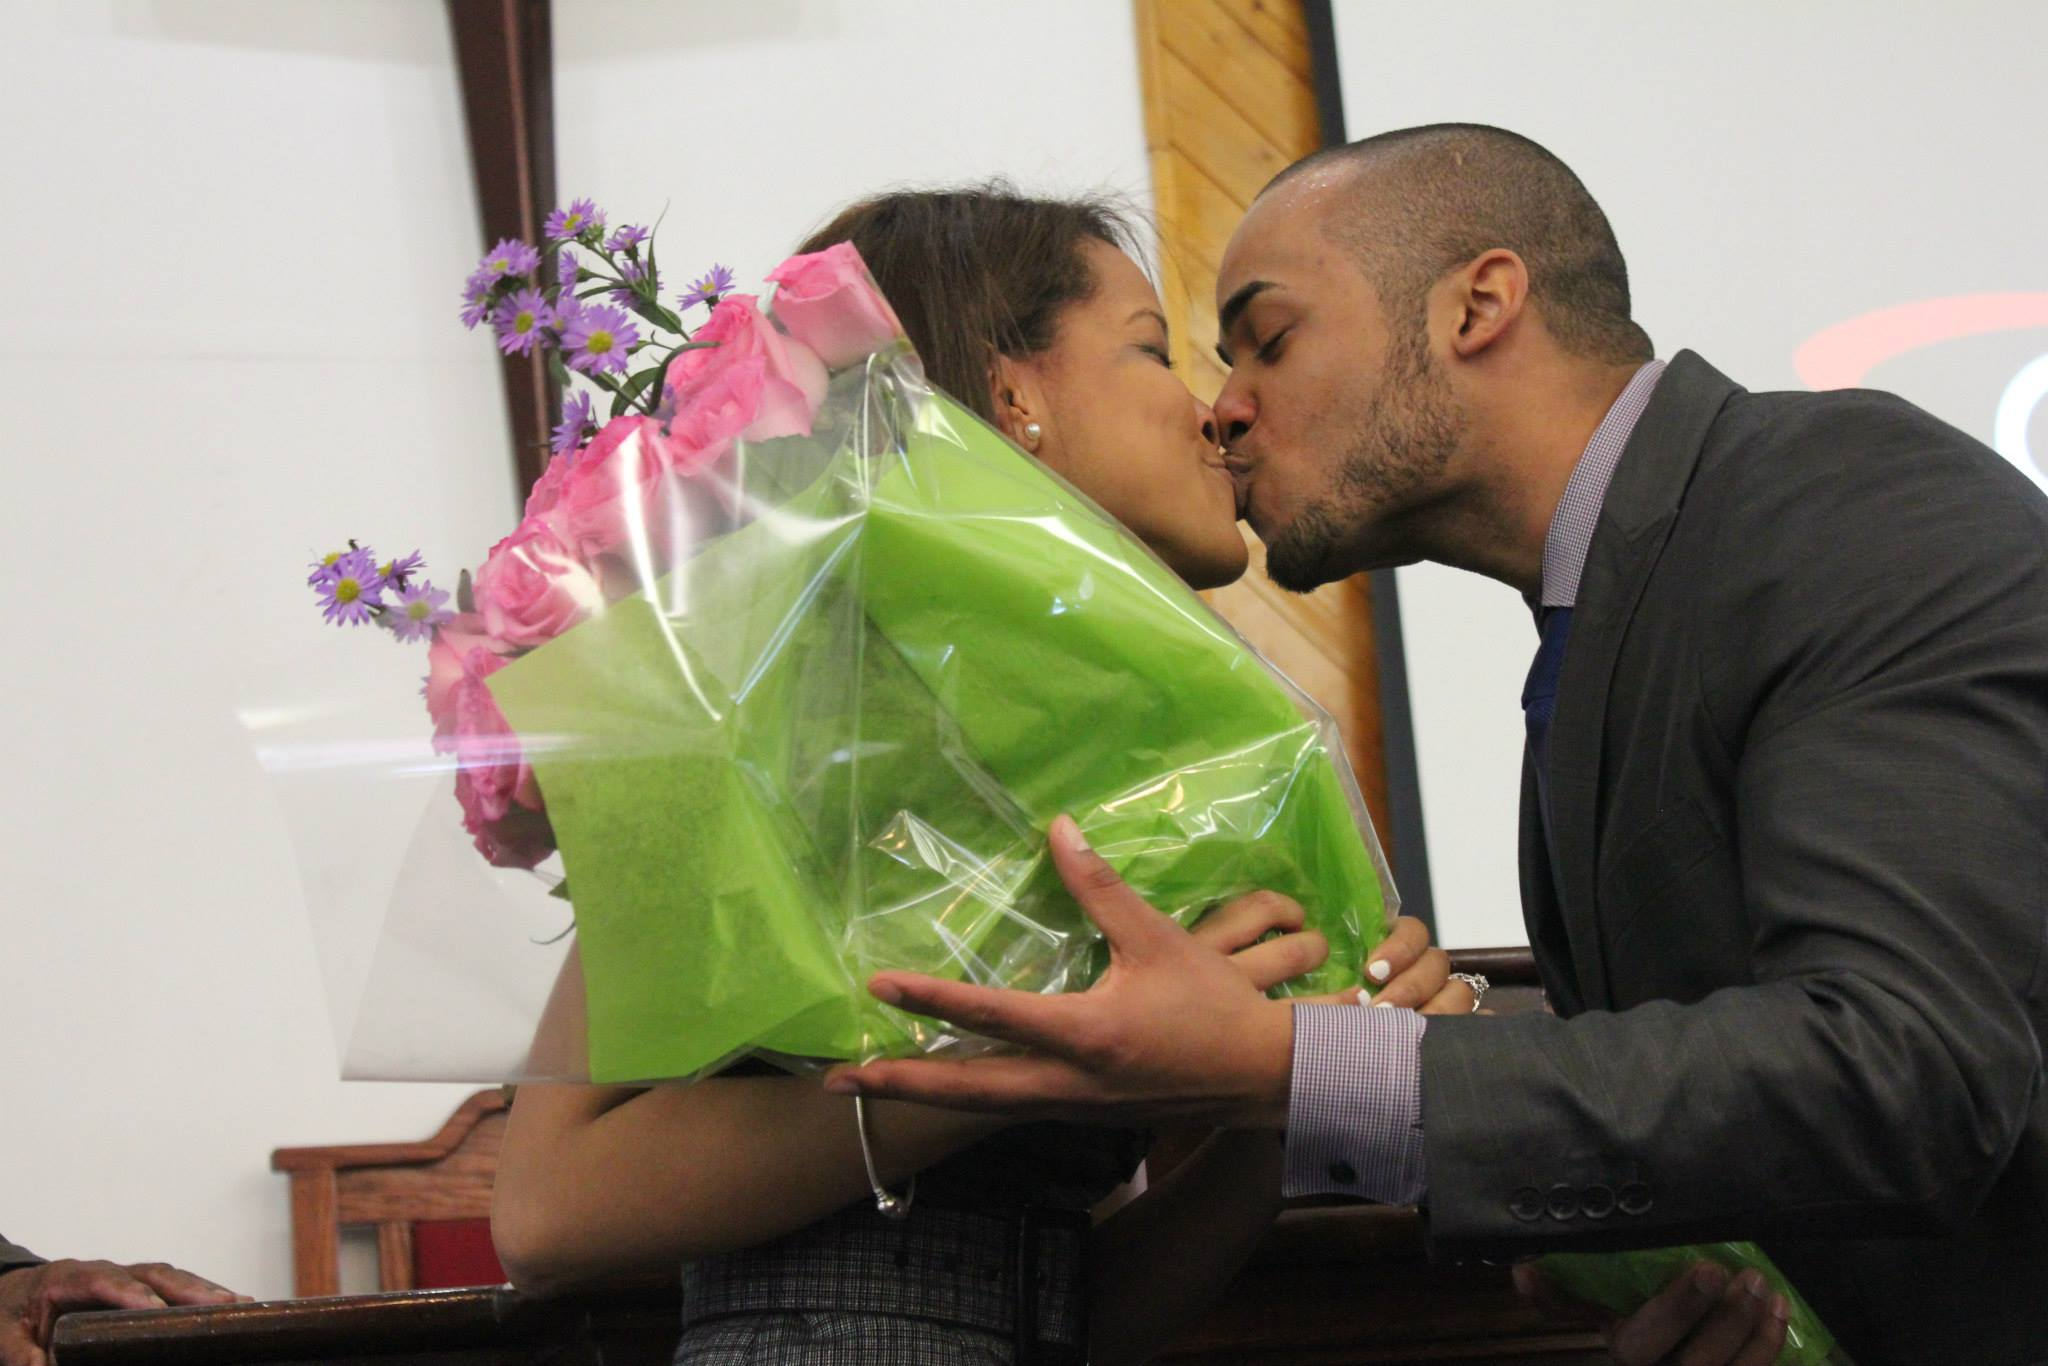 Image 4 of Yohanna and Dominick's Marriage Proposal at Church